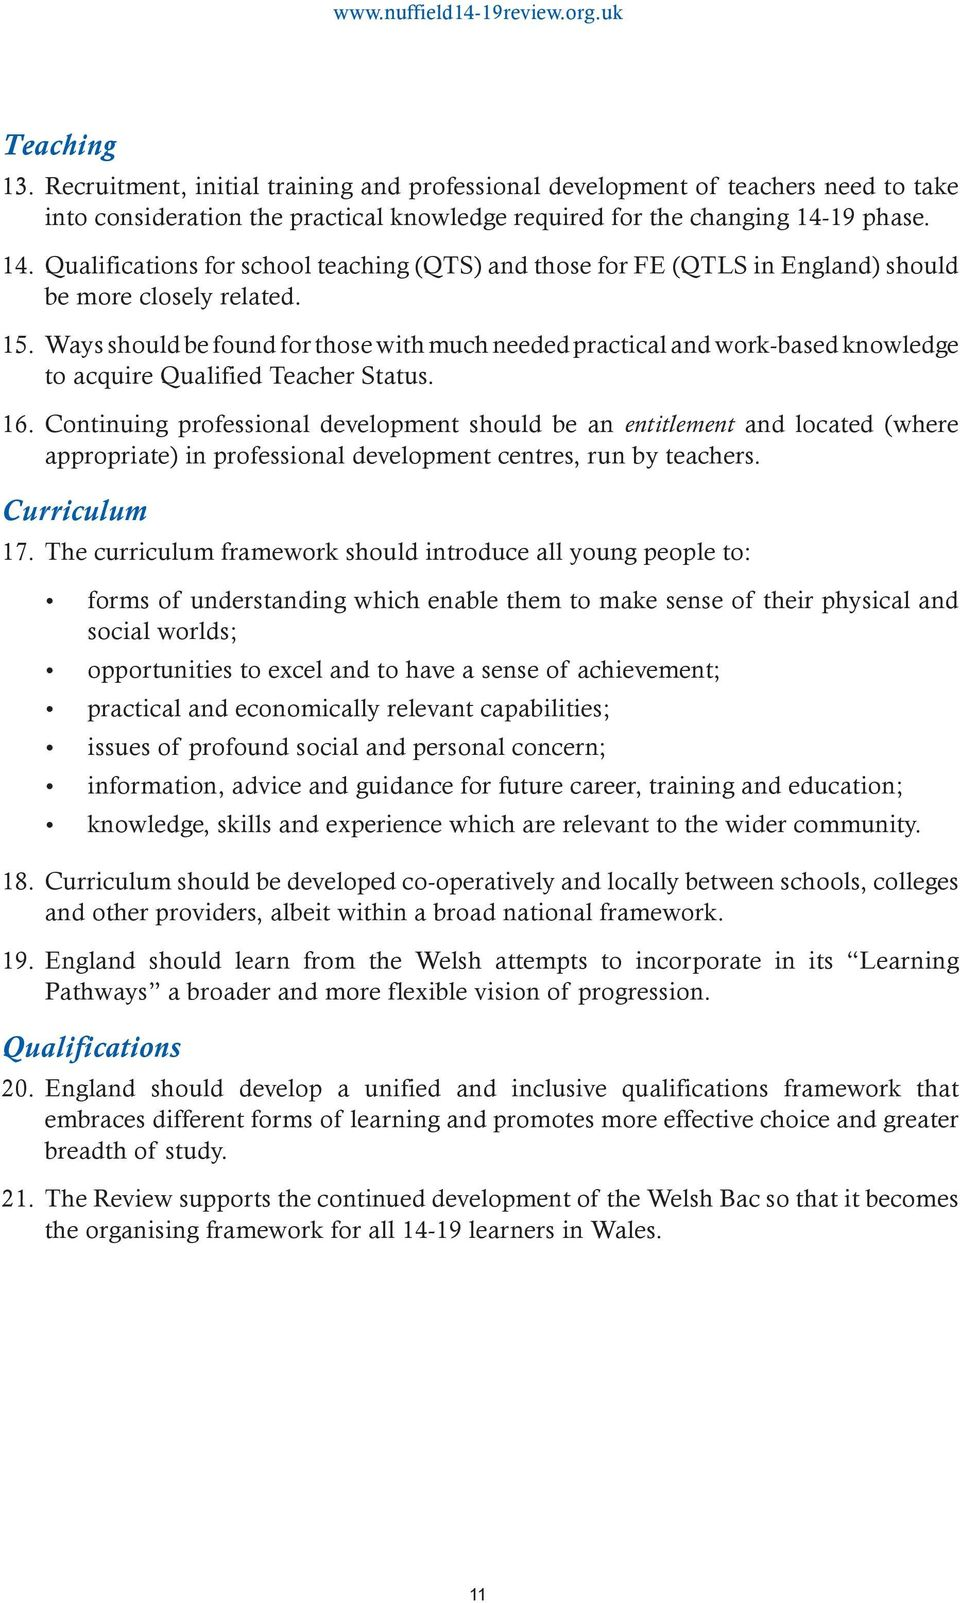 Ways should be found for those with much needed practical and work-based knowledge to acquire Qualified Teacher Status. 16.